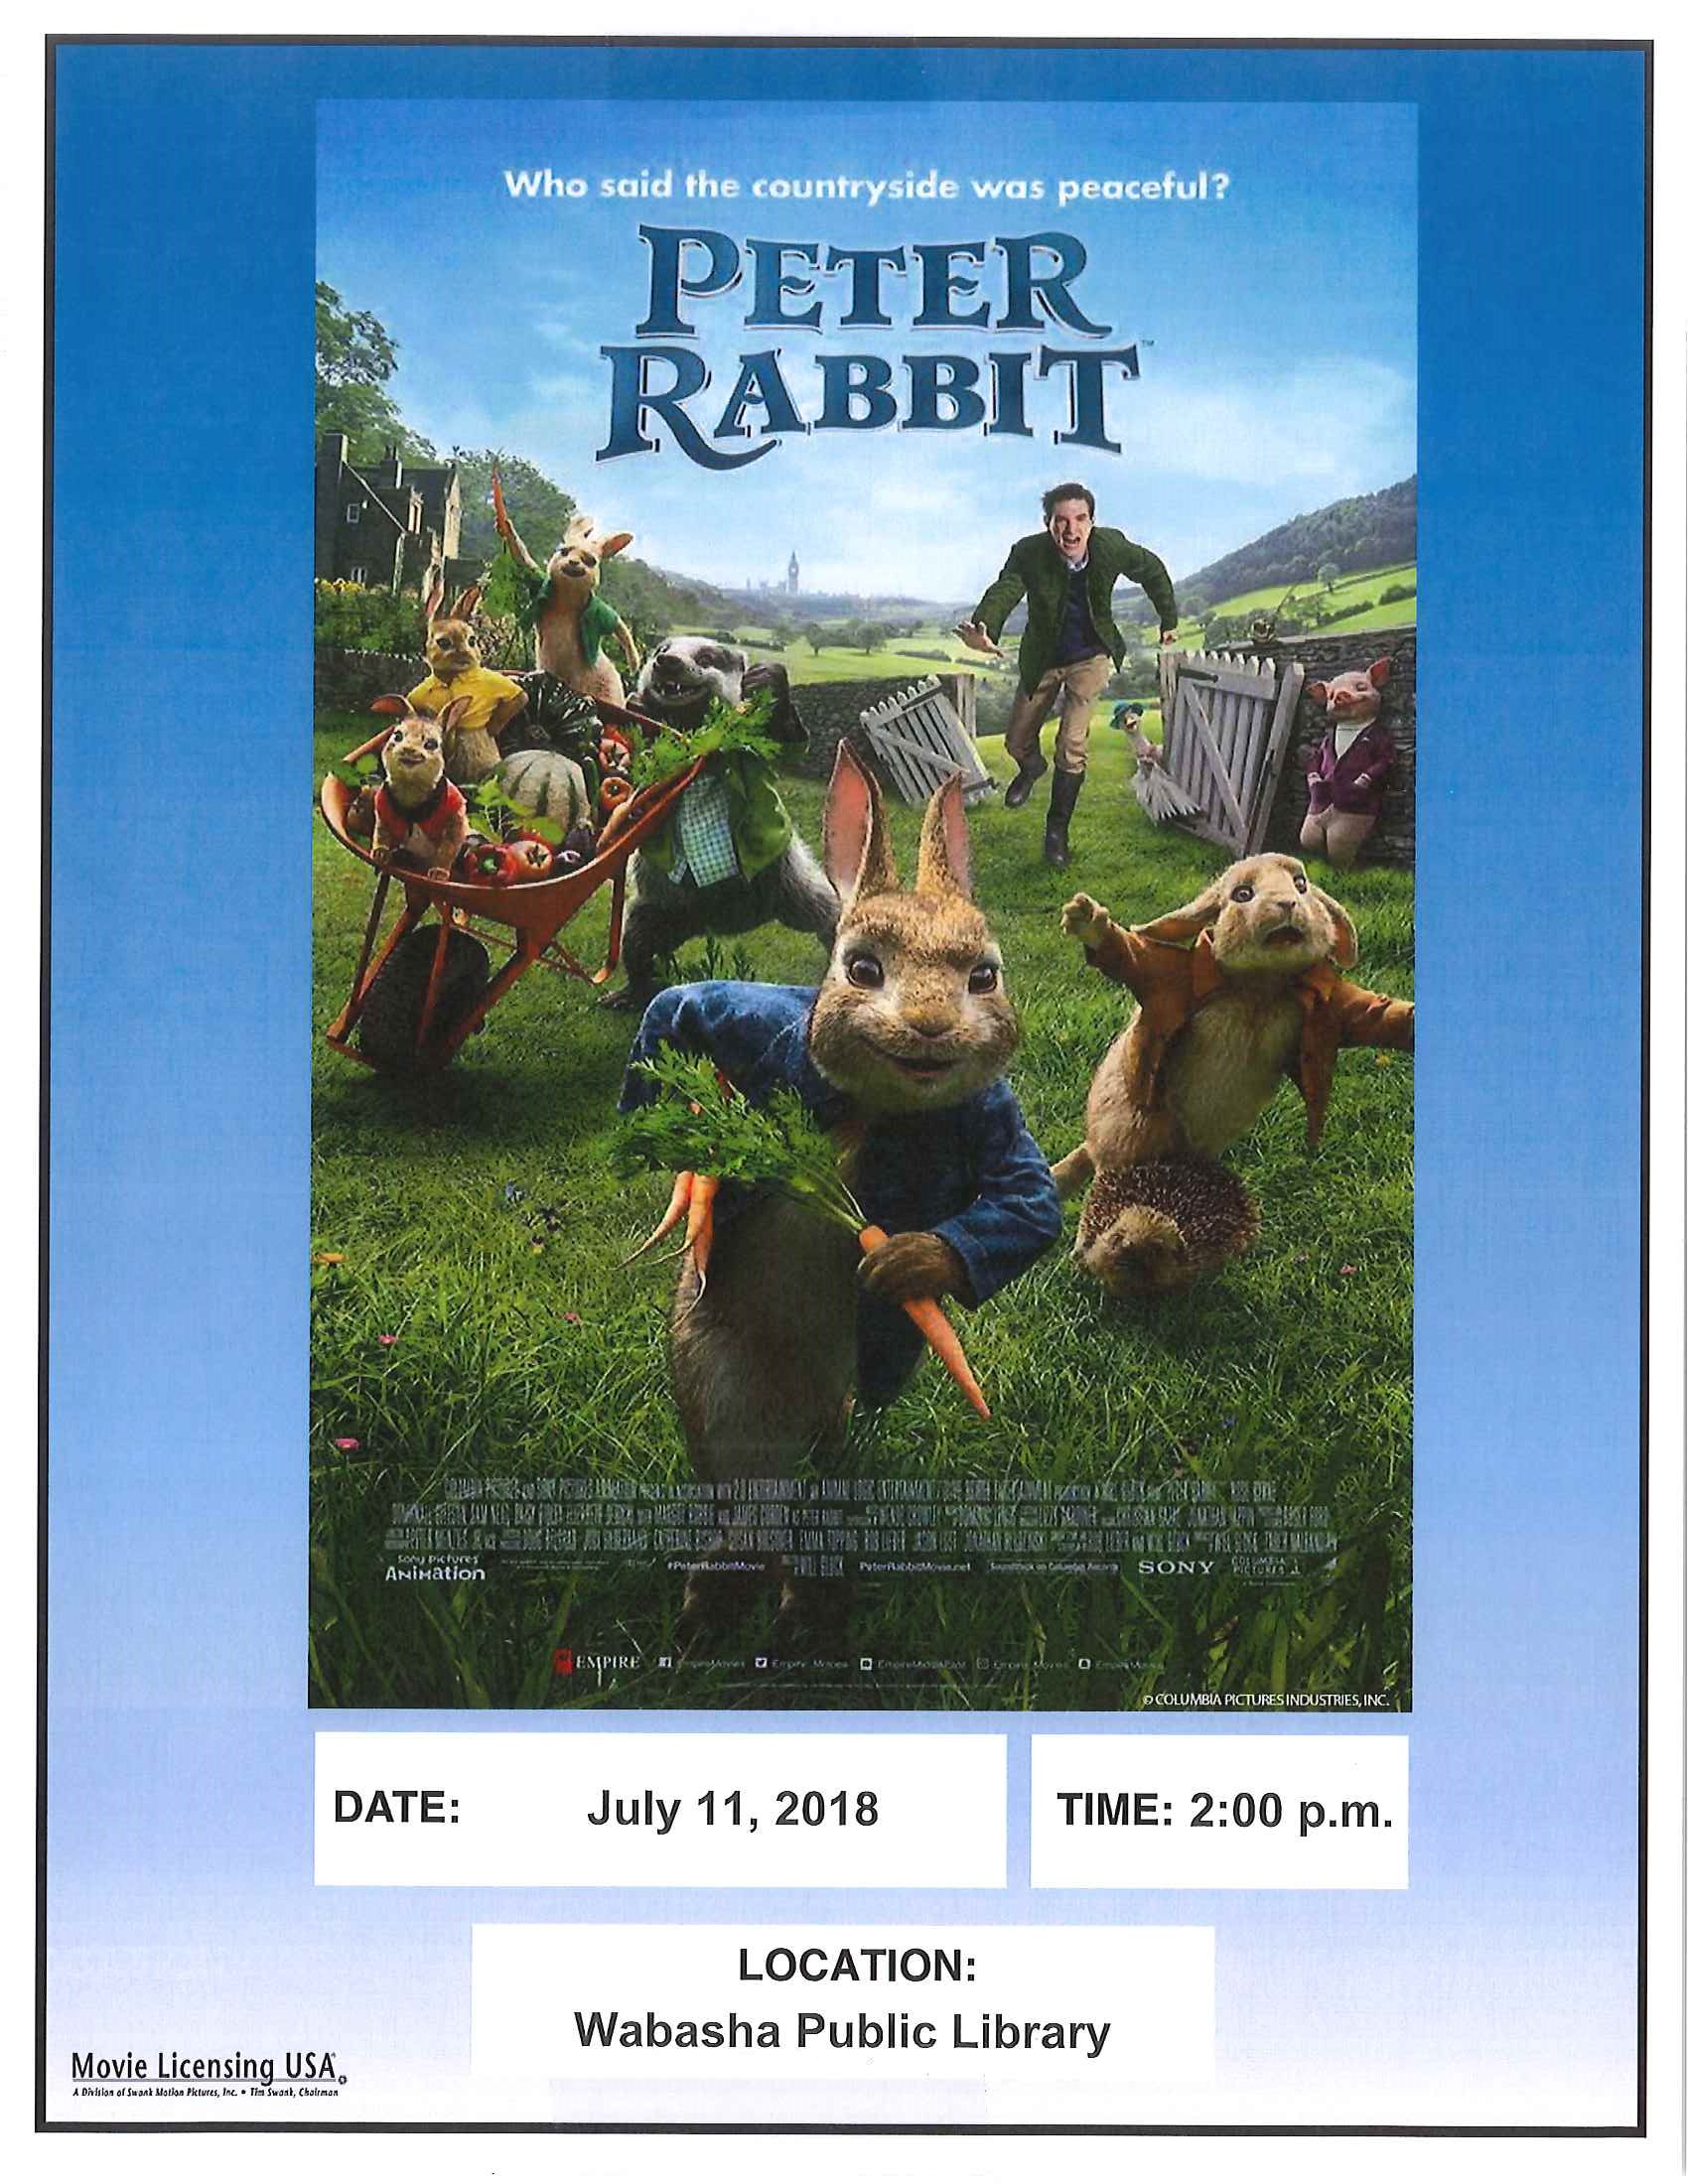 Book To Movie Event In The Children S Library Wabasha